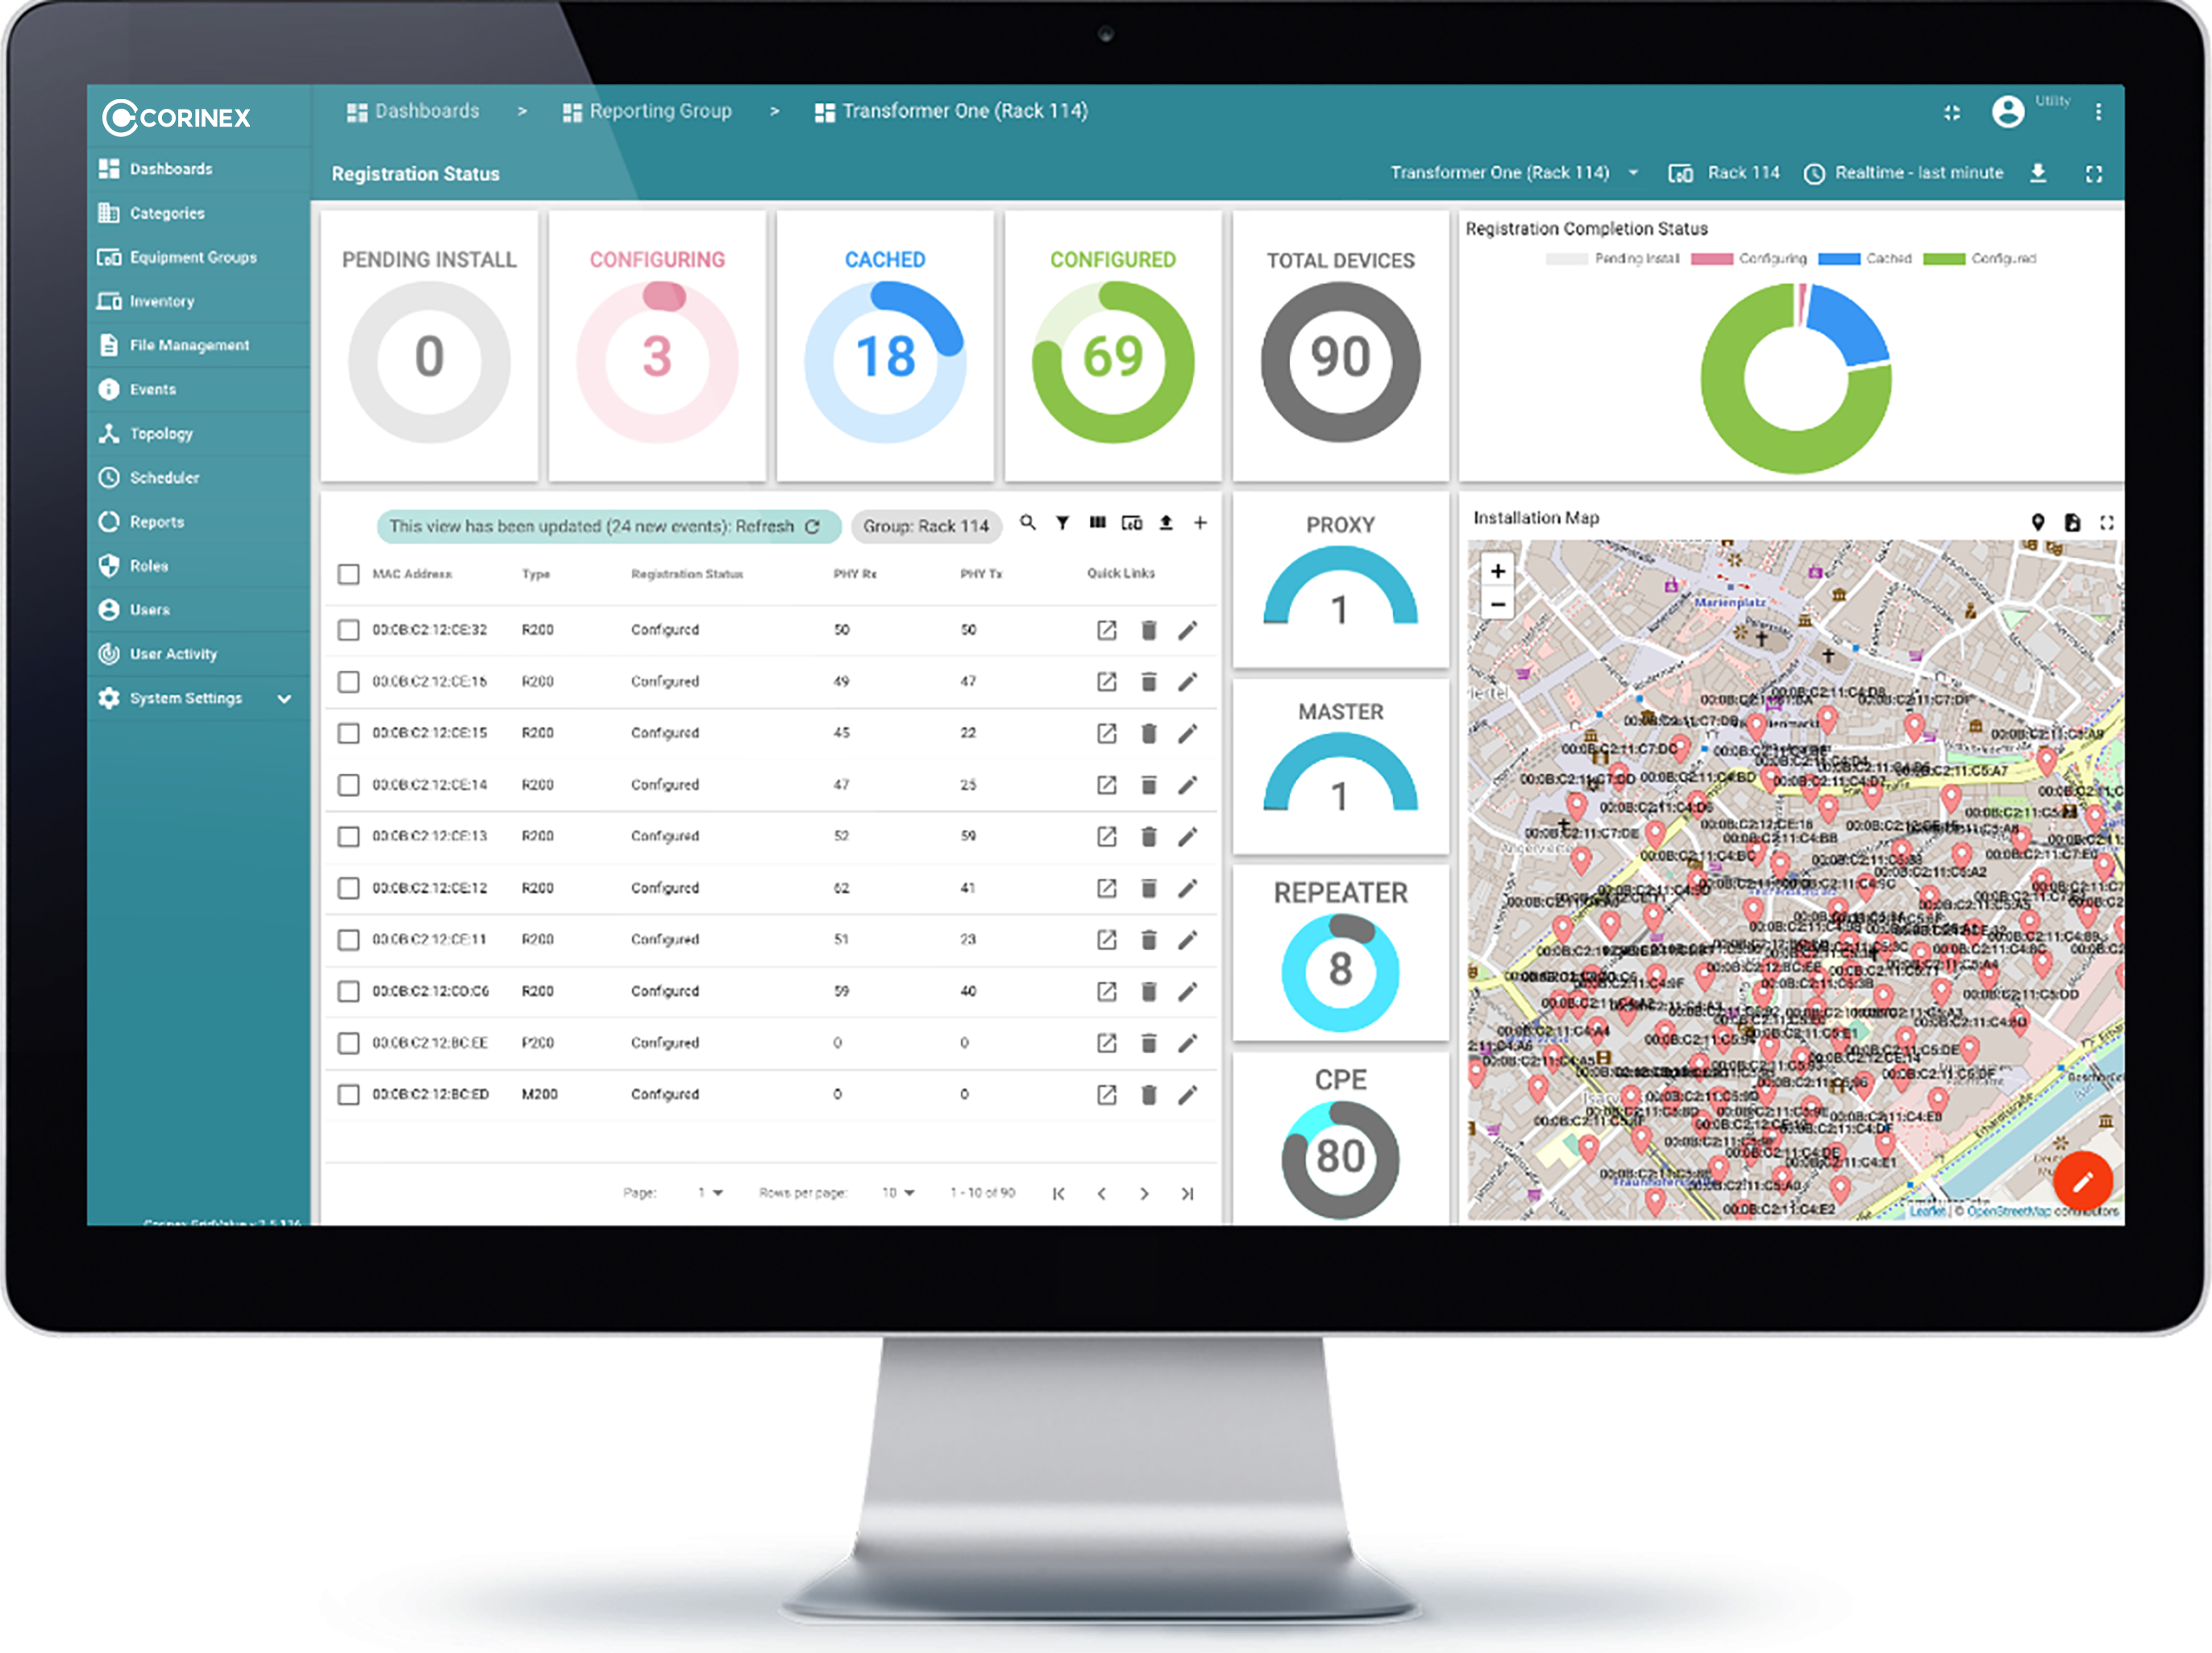 A desktop image of Corinex GridValue Software with analytics